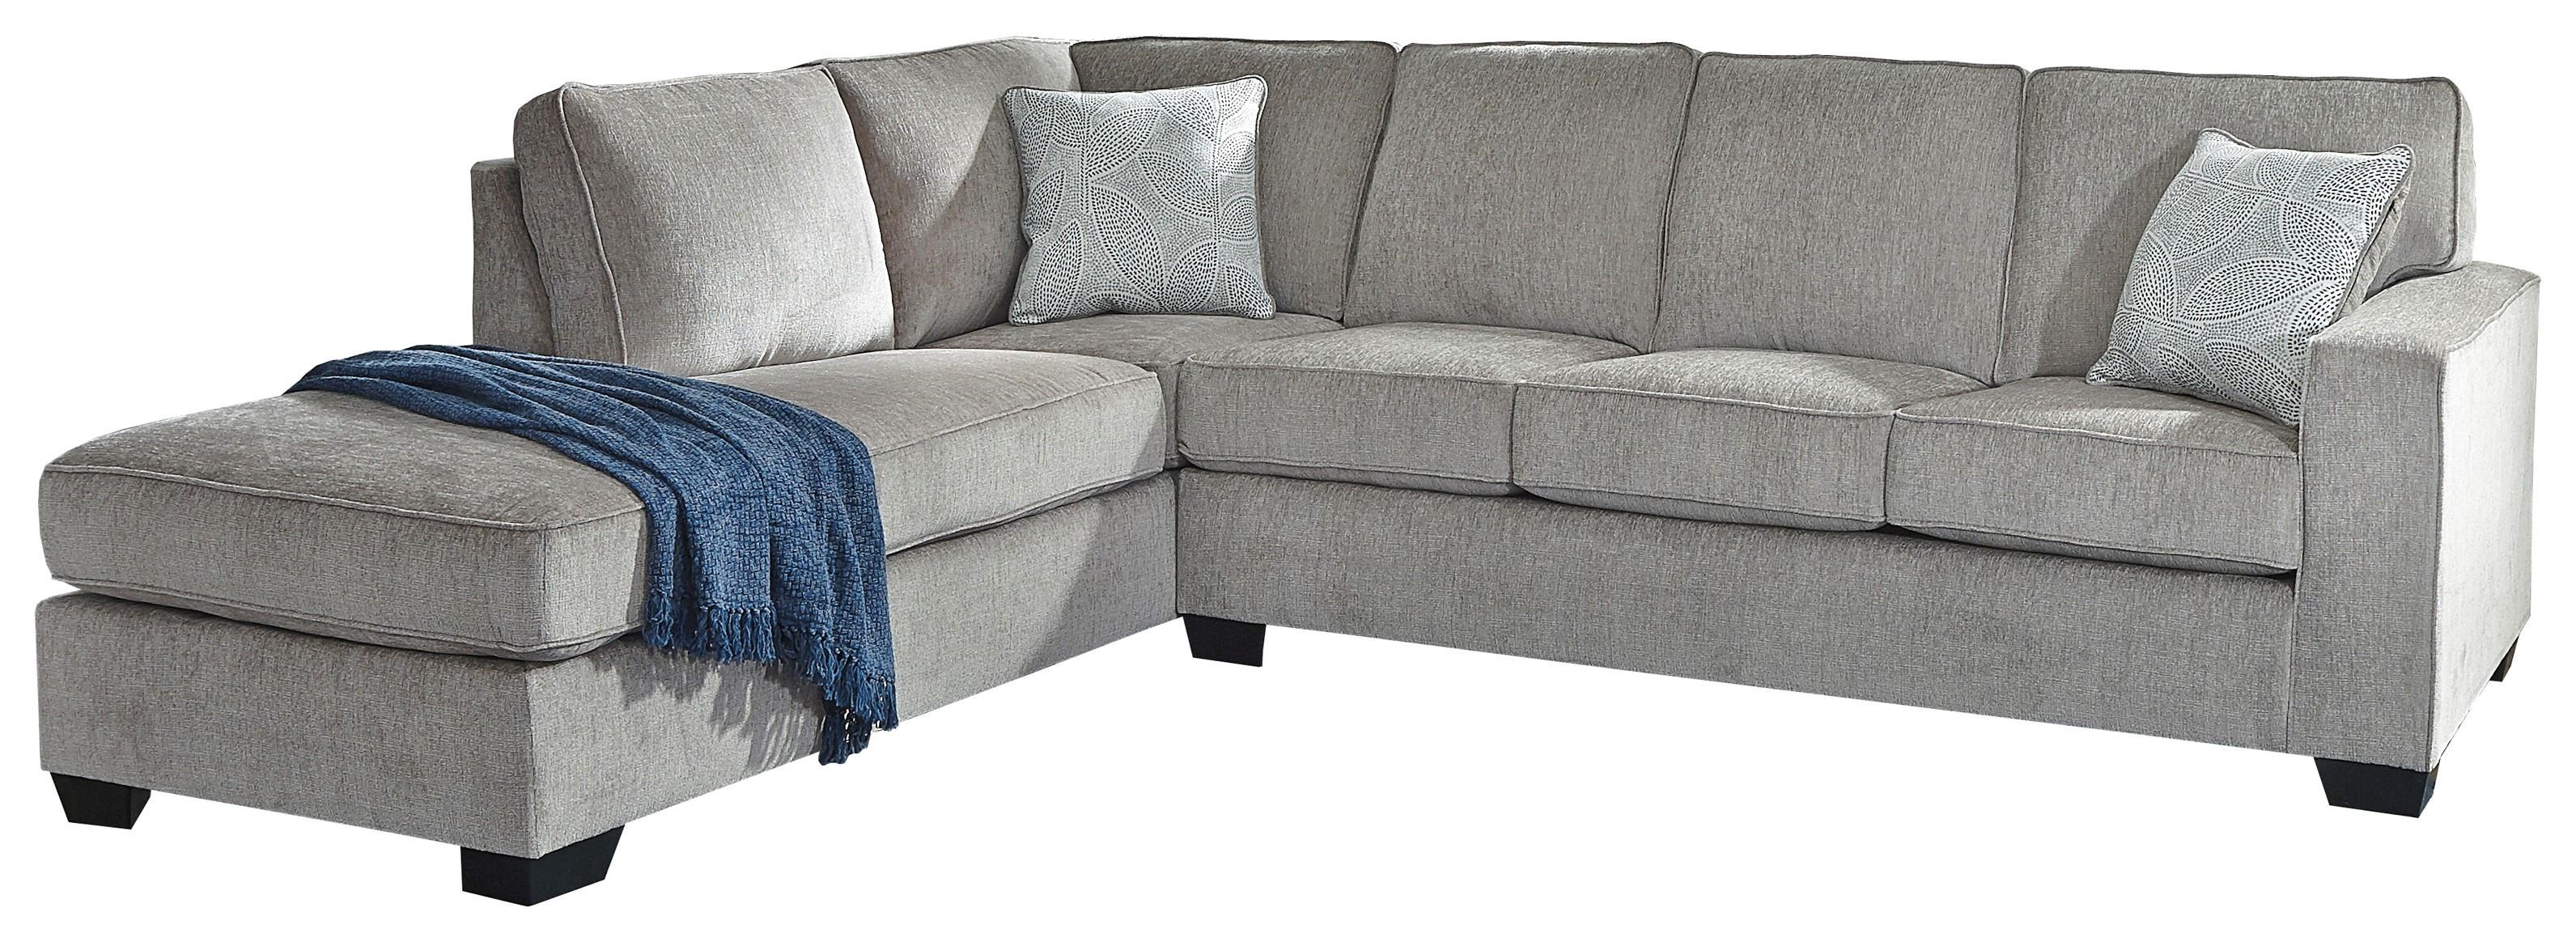 2 PC Sectional, Chair and Ottoman Set